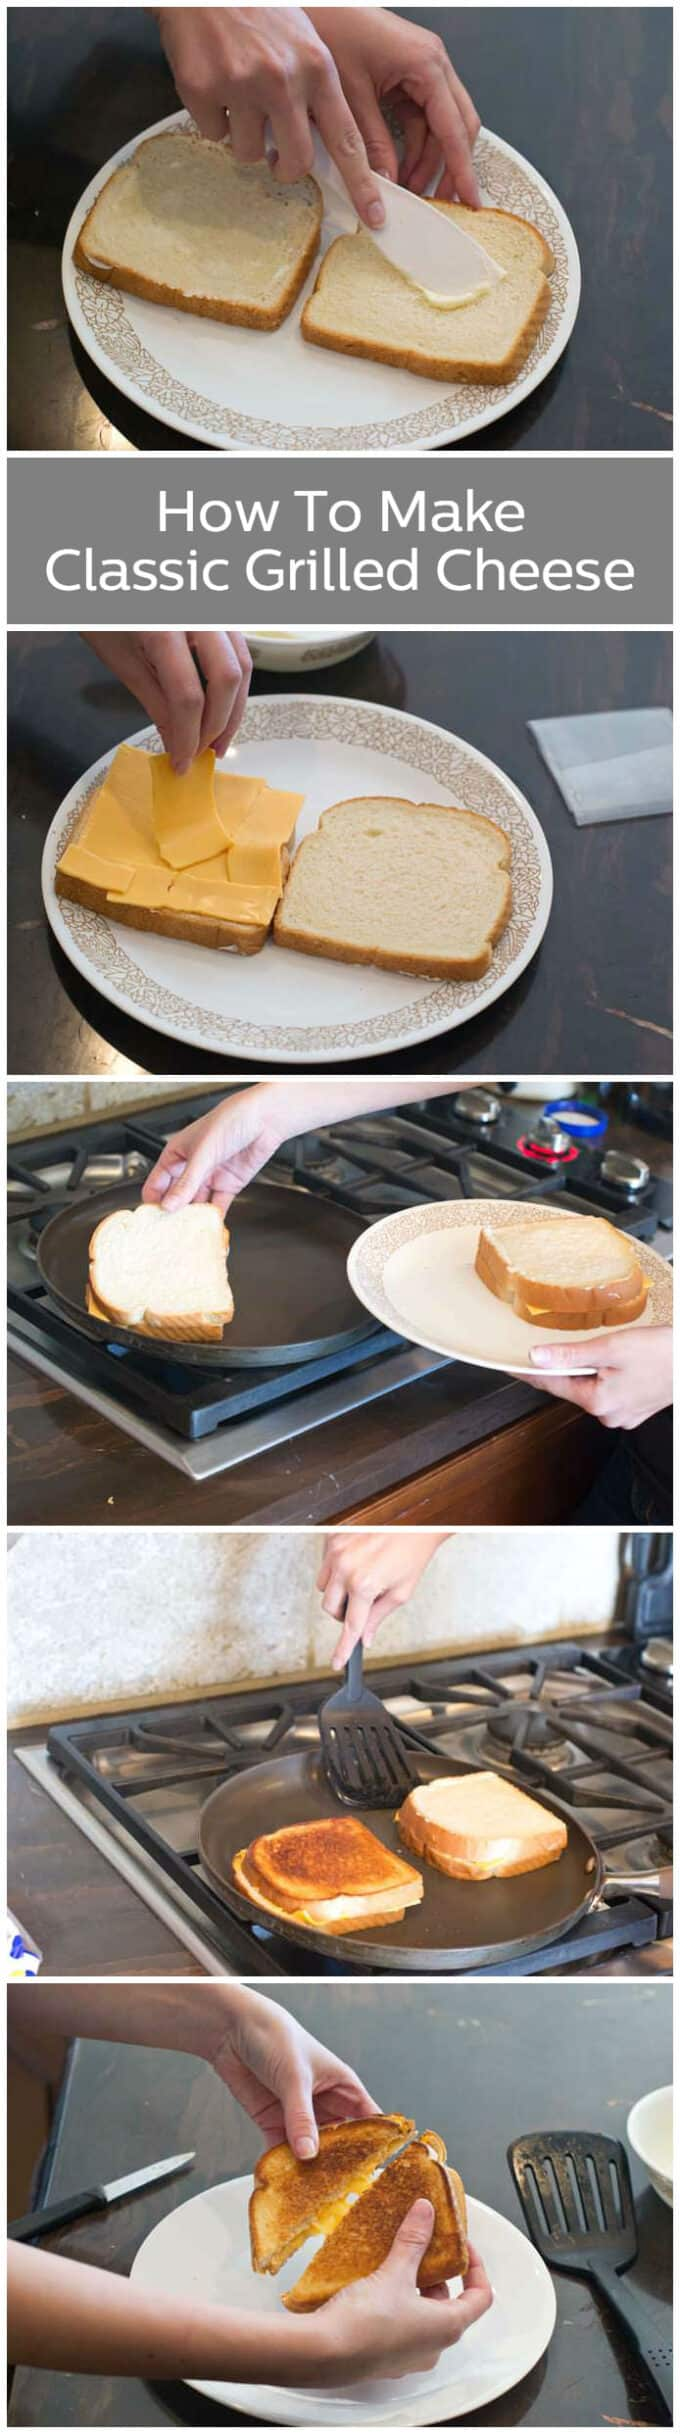 The perfect classic grilled cheese, step-by-step